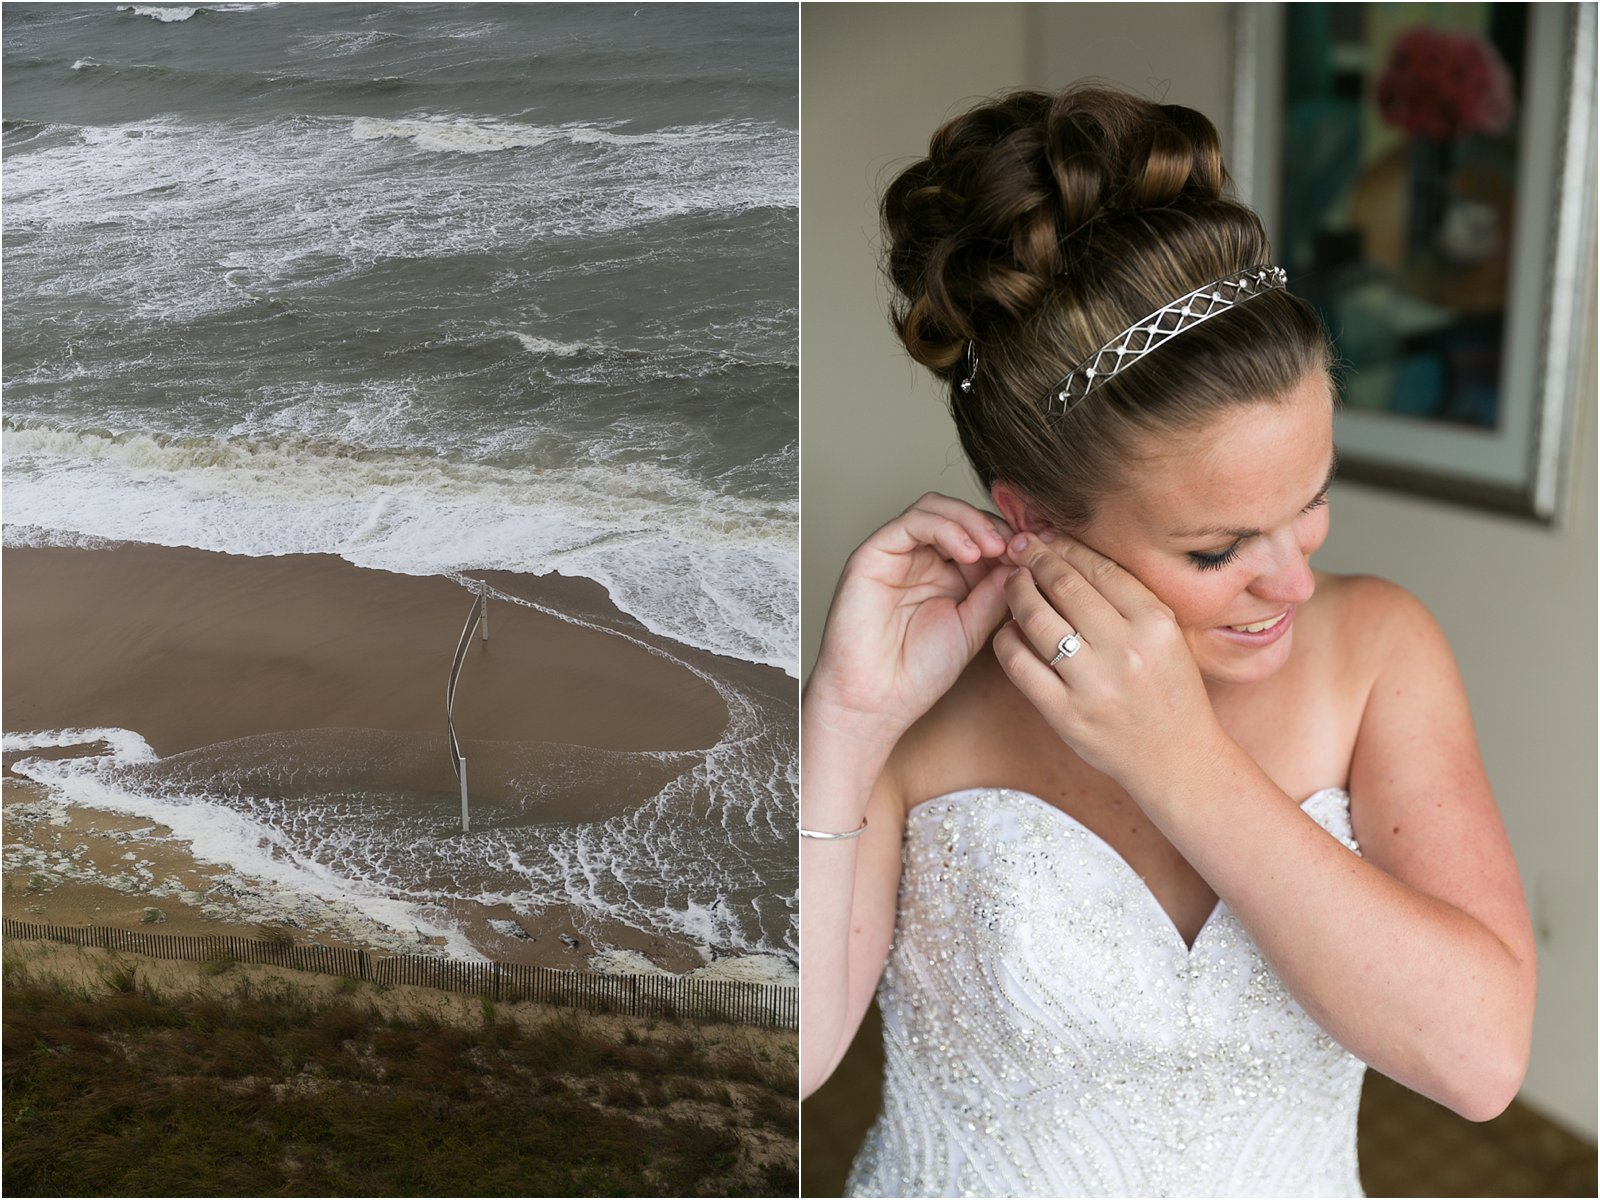 jessica_ryan_photography_lesner_inn_wedding_virginia_beach_rainy_day_0485